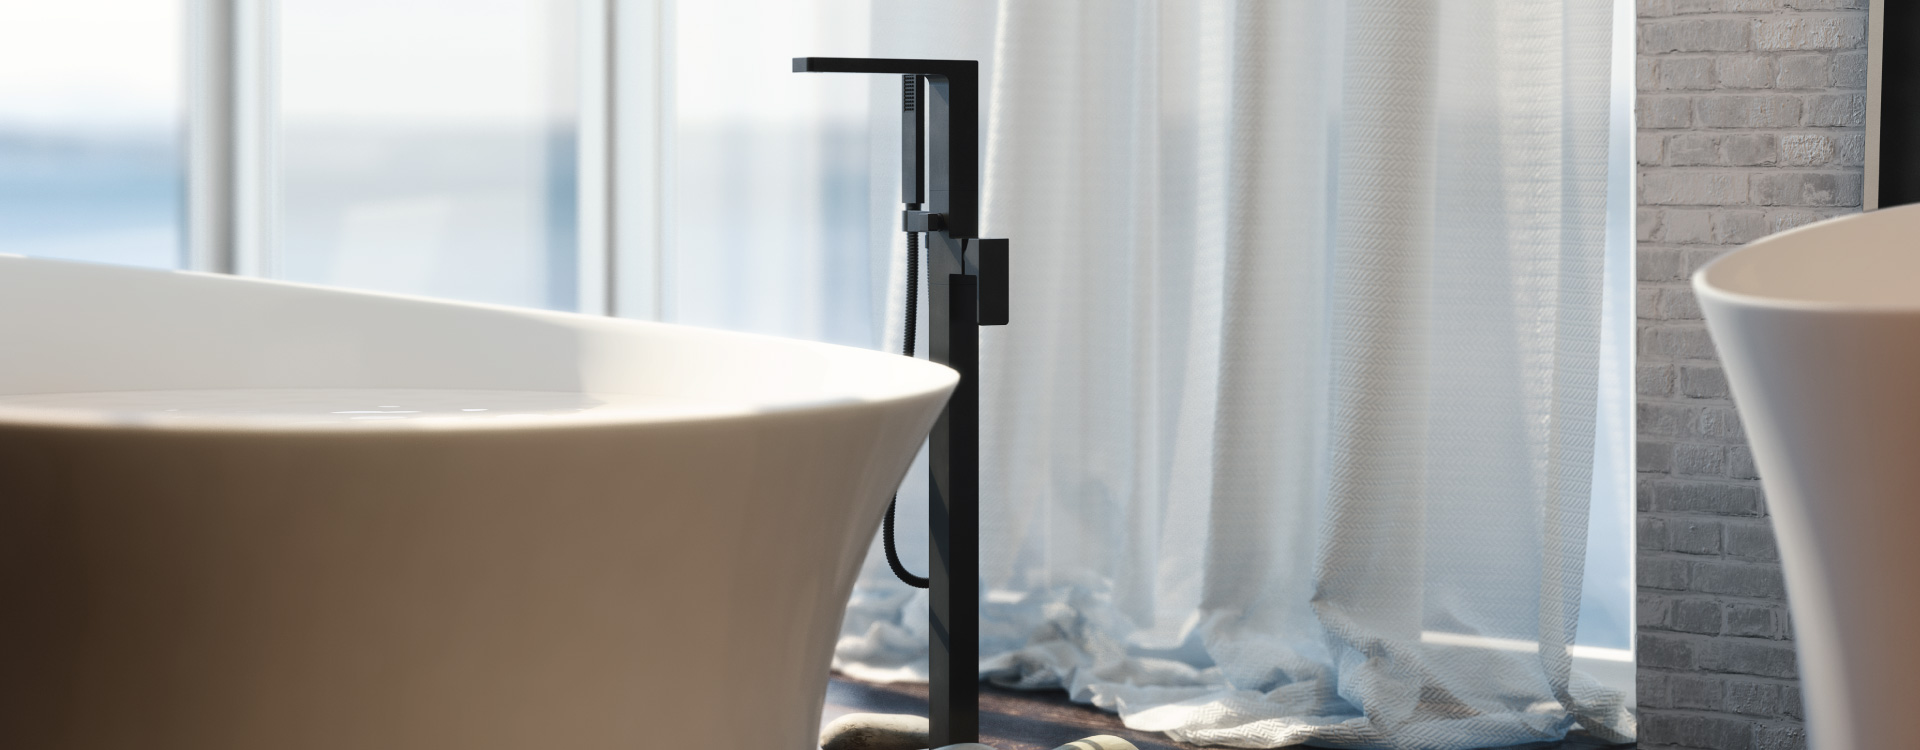 Freestanding Tub Faucet in Matte Black with white acrylic tub